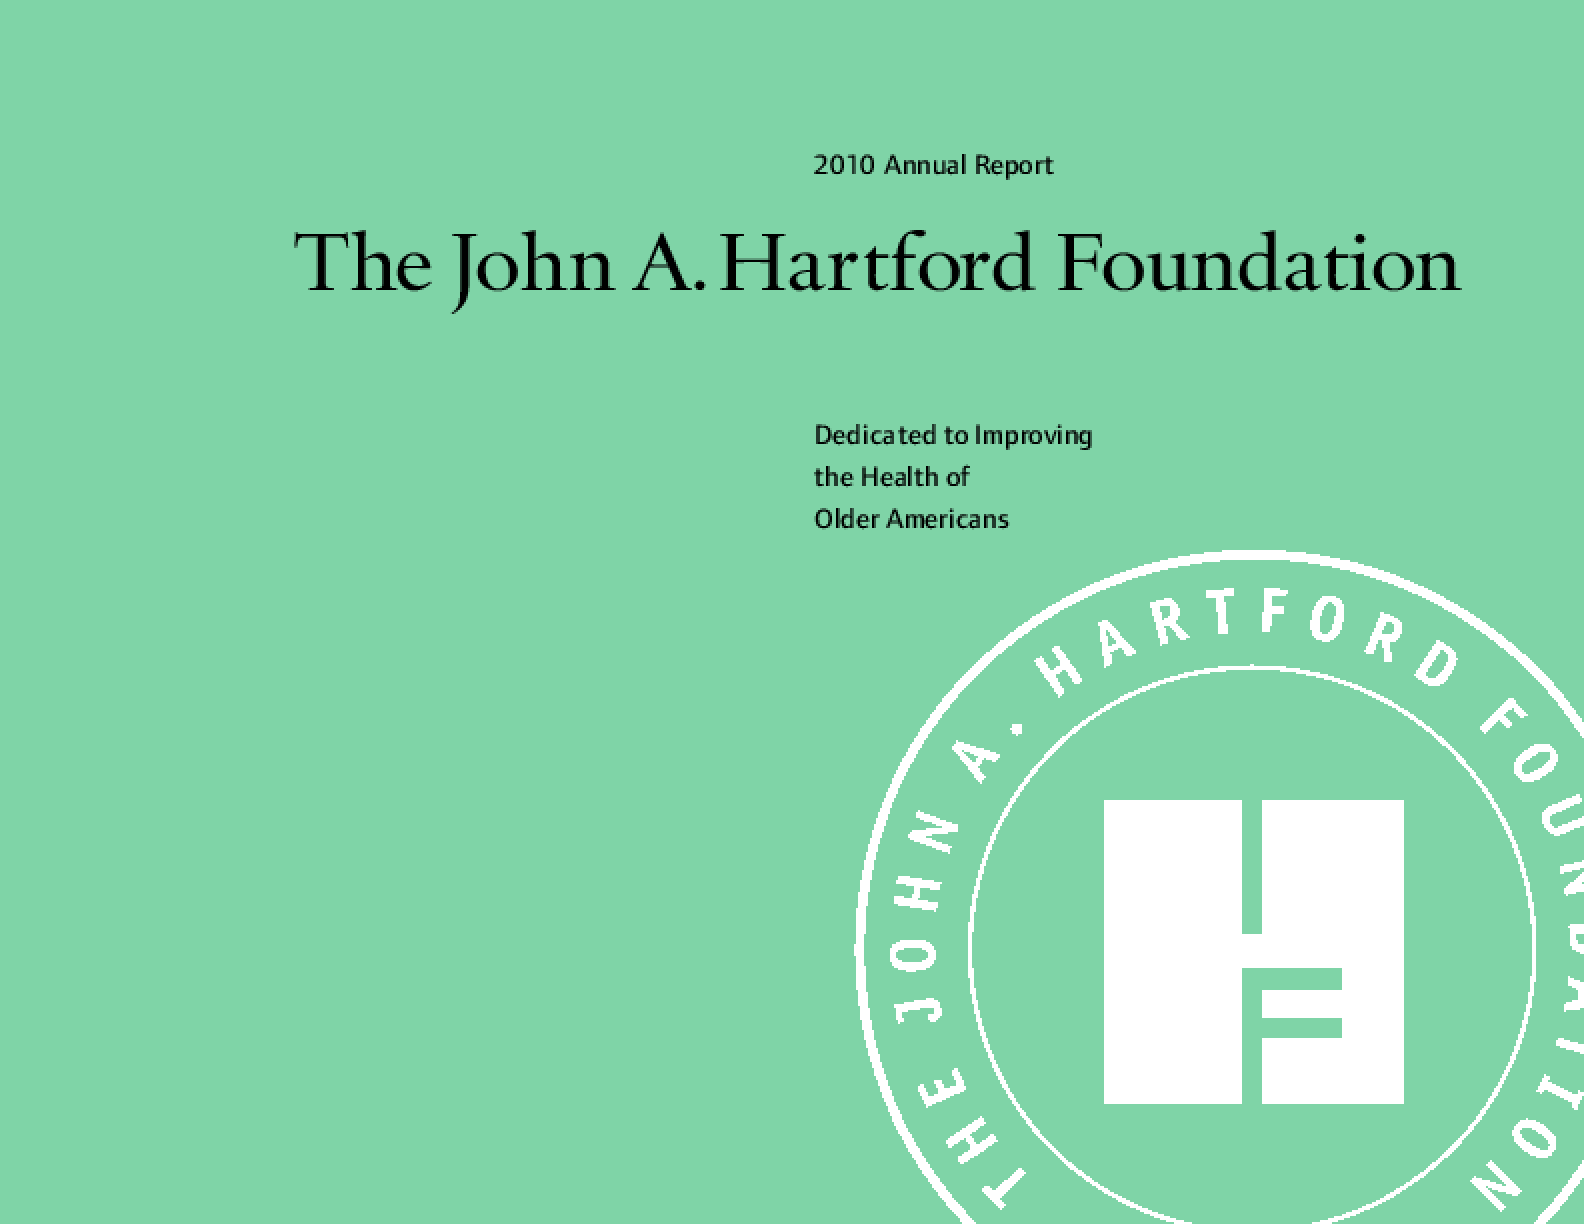 John A. Hartford Foundation 2010 Annual Report